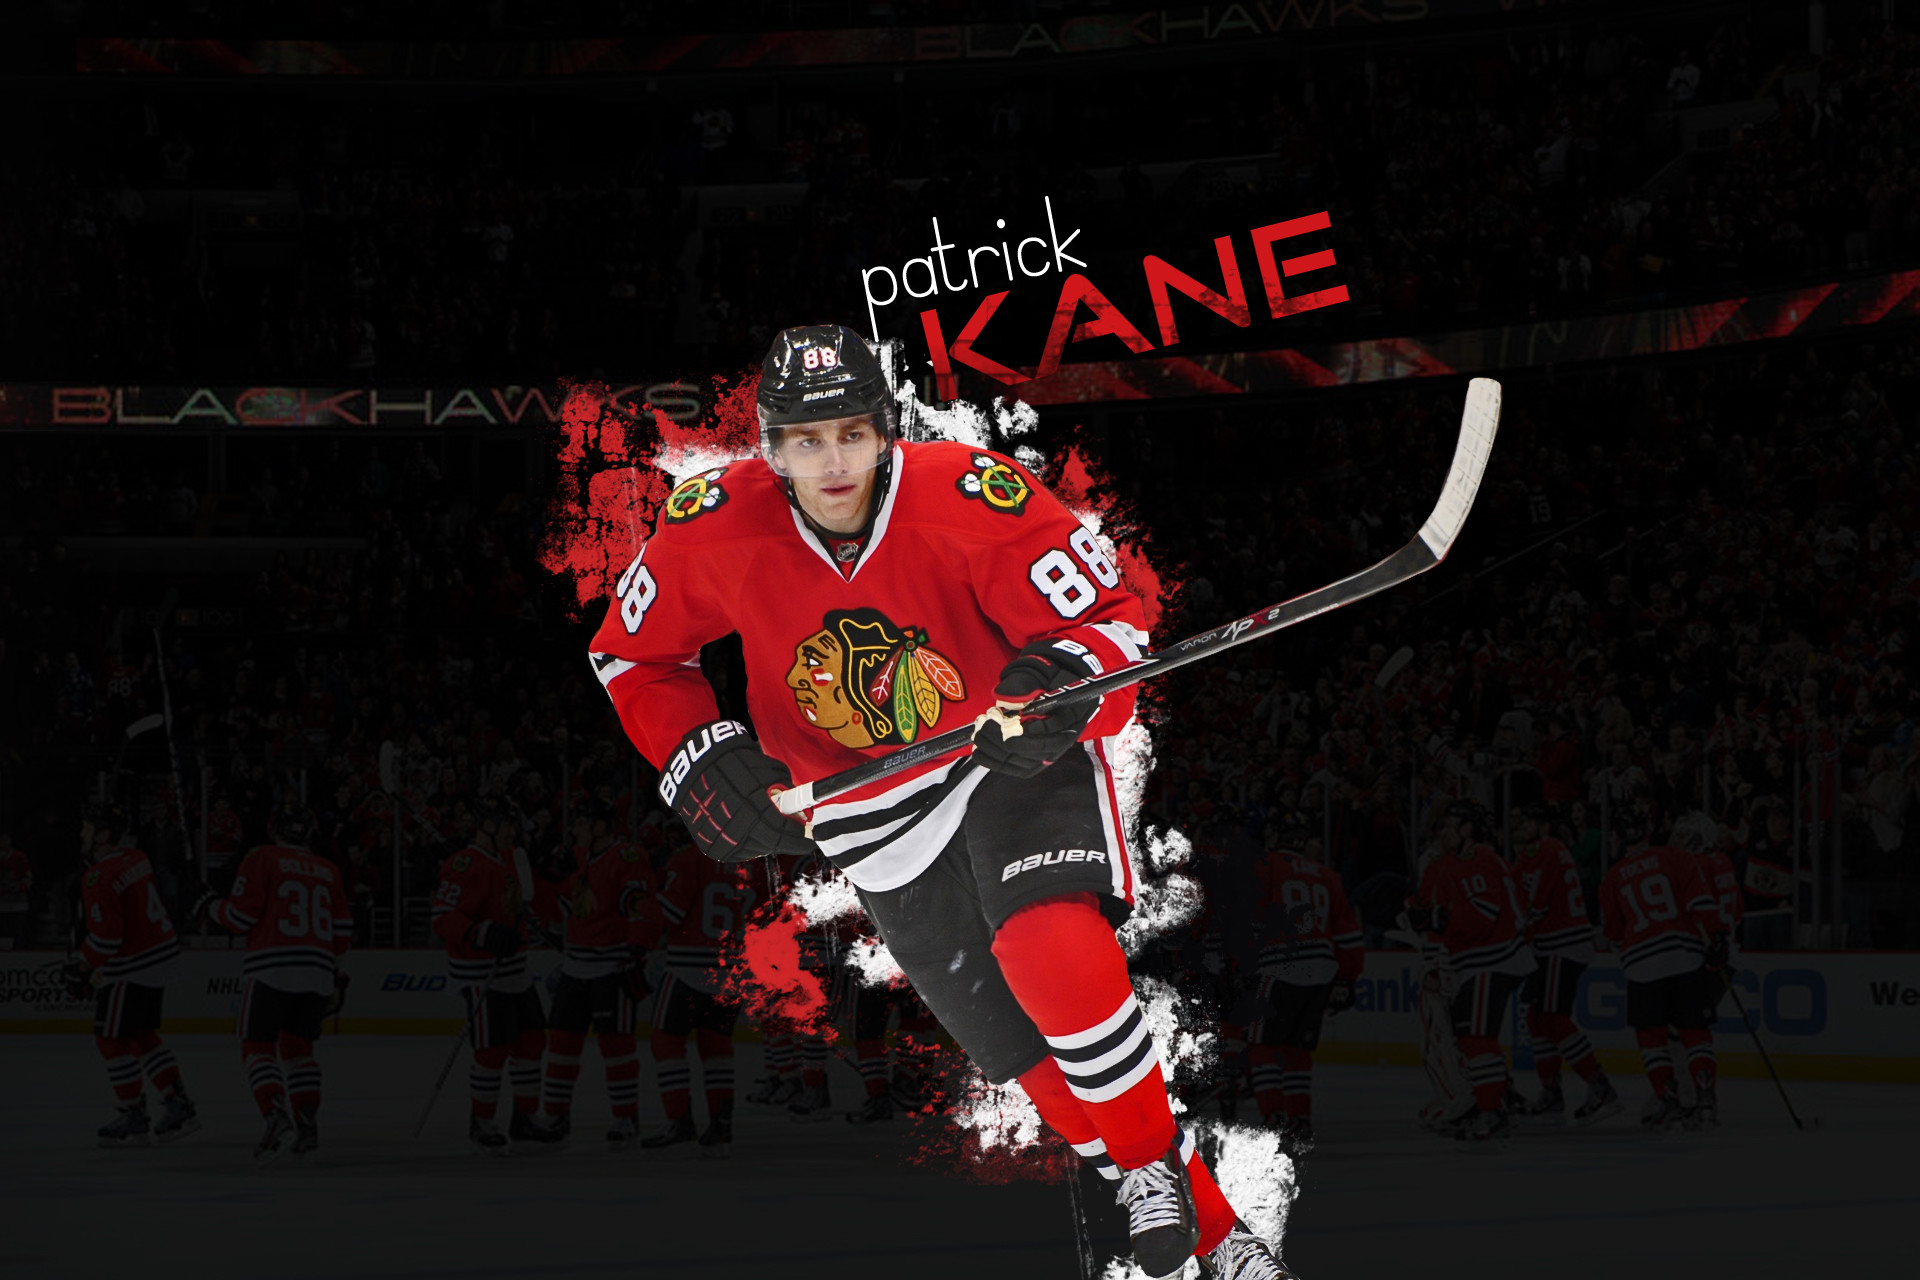 1920x1280 NHL Wallpaper featuring Patrick Kane from Chicago Blackhawks. Don't really  like Kane but